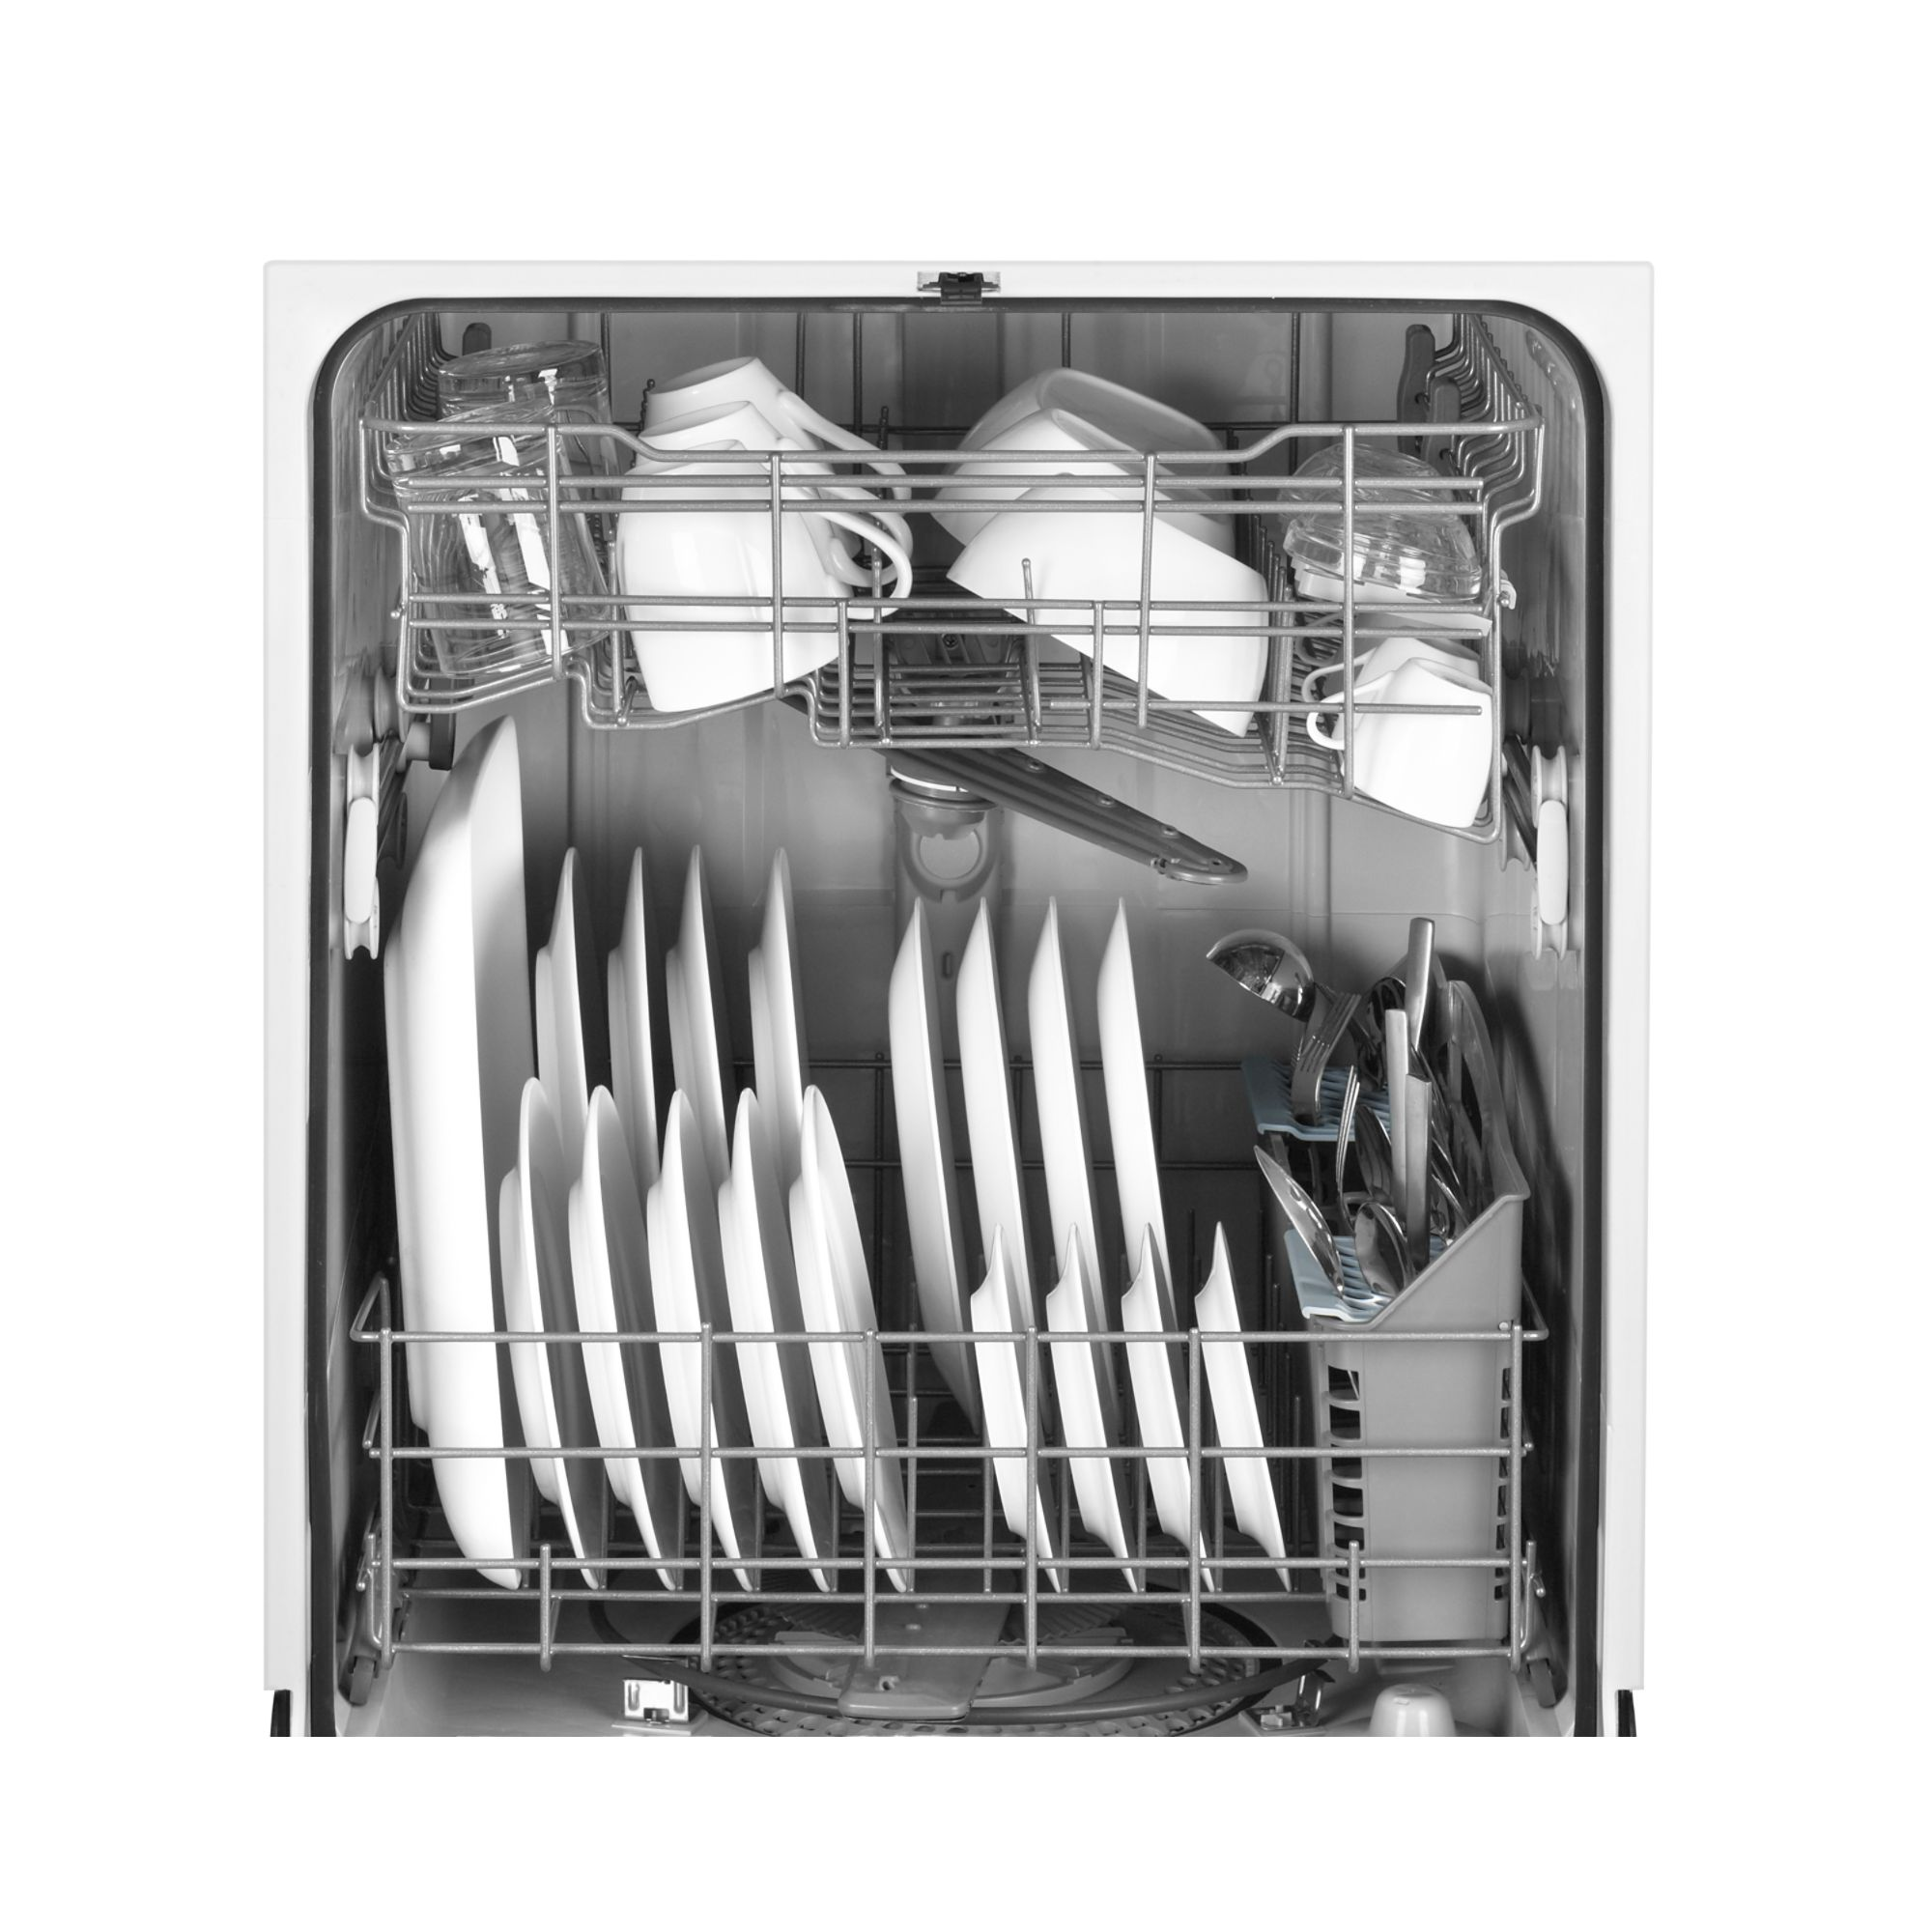 "Maytag 24"" Jetclean® Plus Dishwasher w/ Stainless Steel Tub - Bisque"